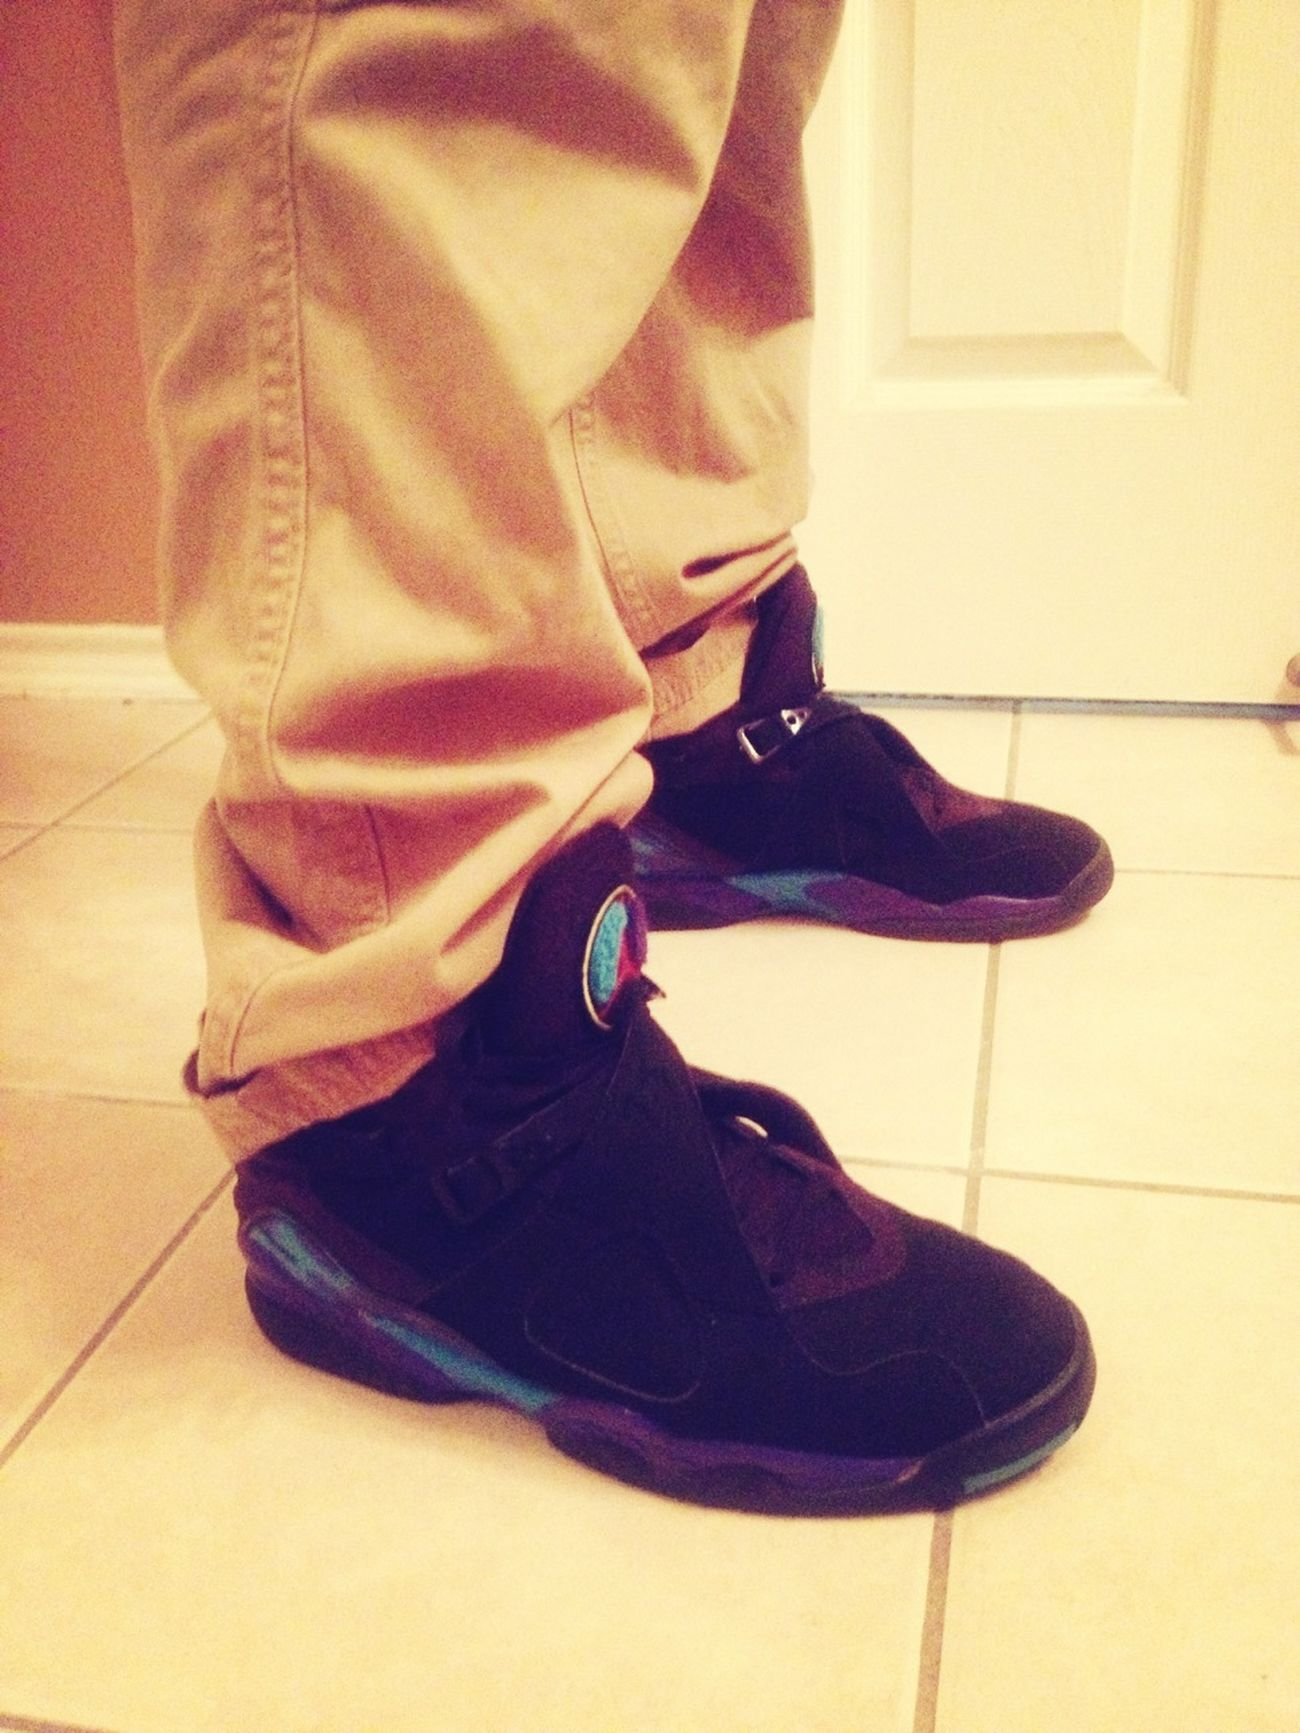 My Favorite Shoe . Aqua 8's